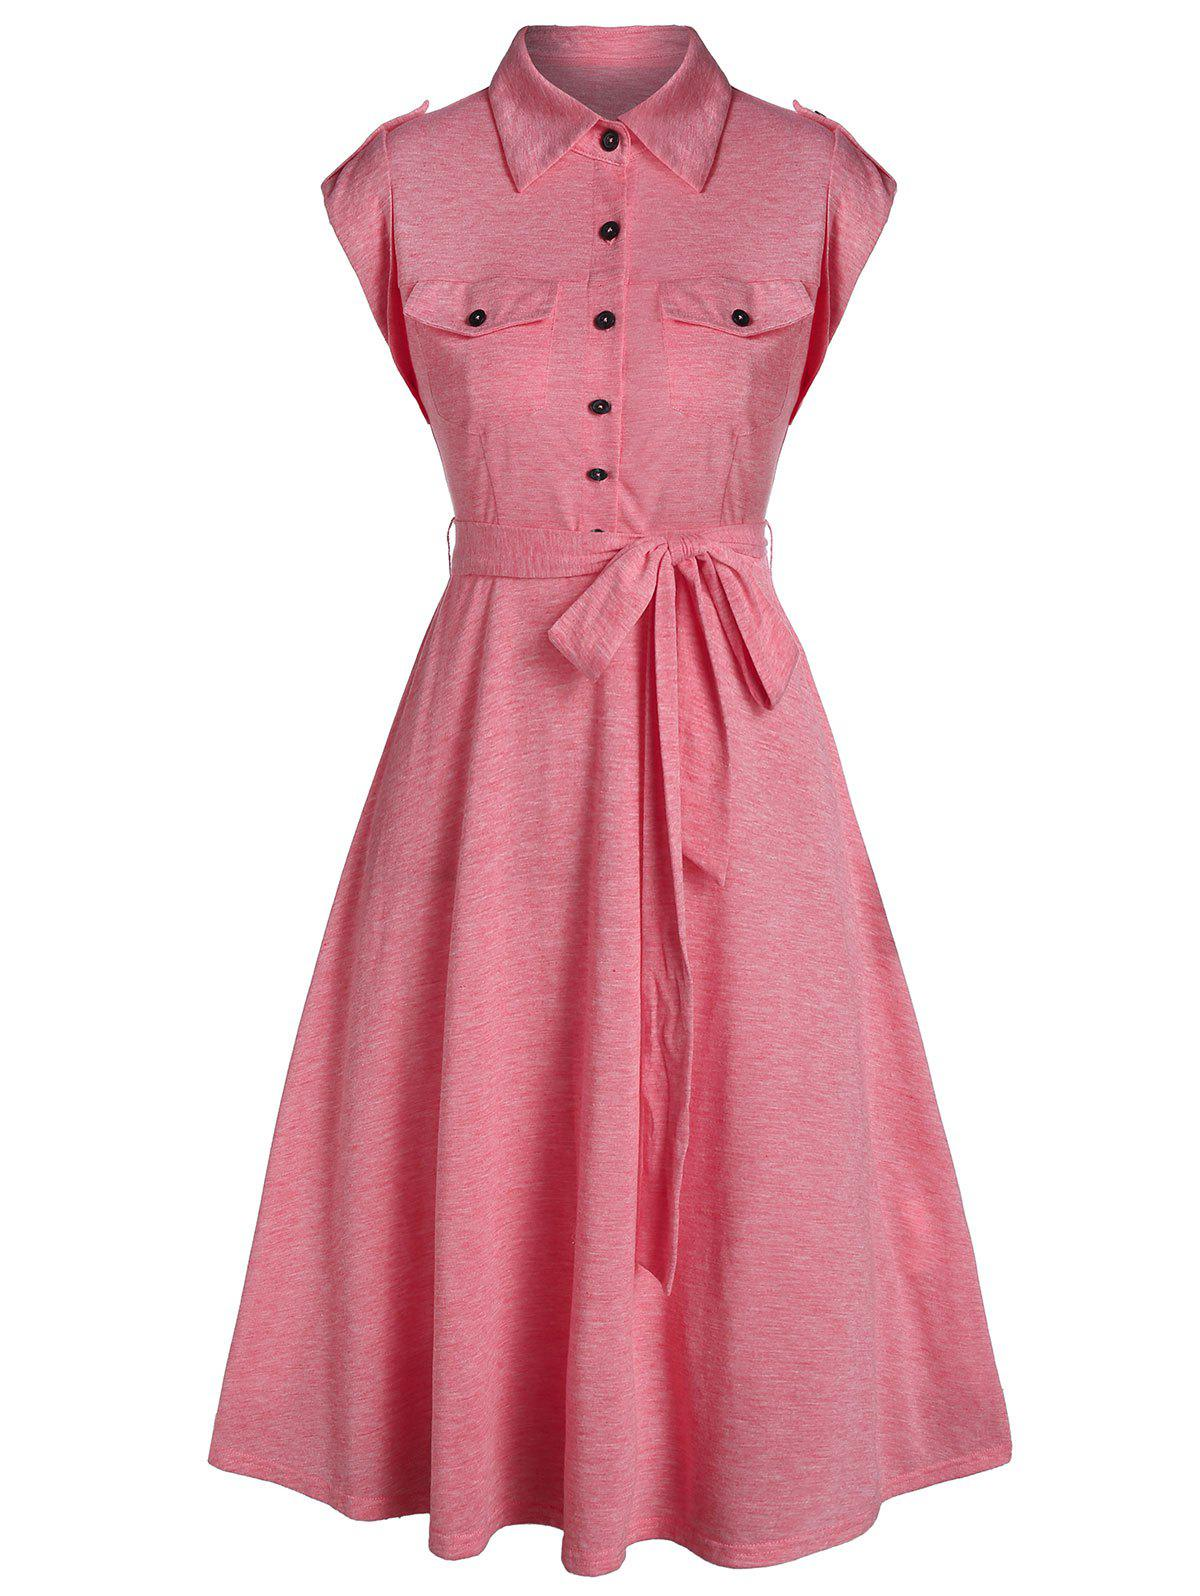 Half Button Double Pocket Belted Flare Dress - PINK 2XL